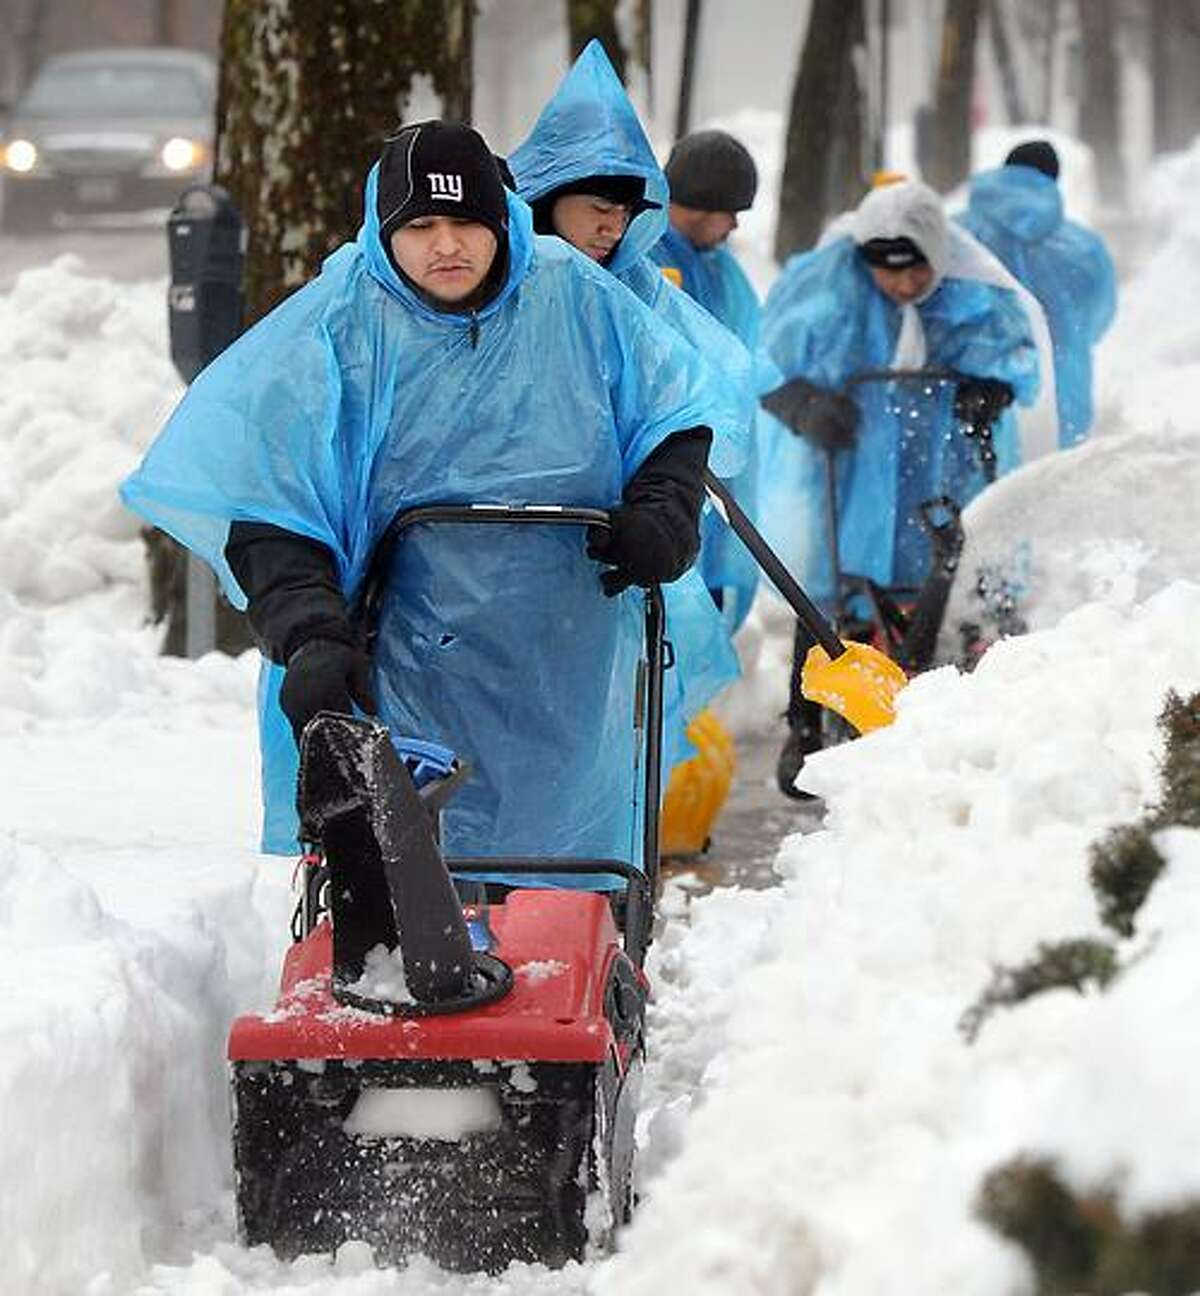 The Blizzard of 2013, Nemo, New Haven. Some of the Yale clean-up crew at work on Temple St. Mara Lavitt/New Haven Register2/11/13